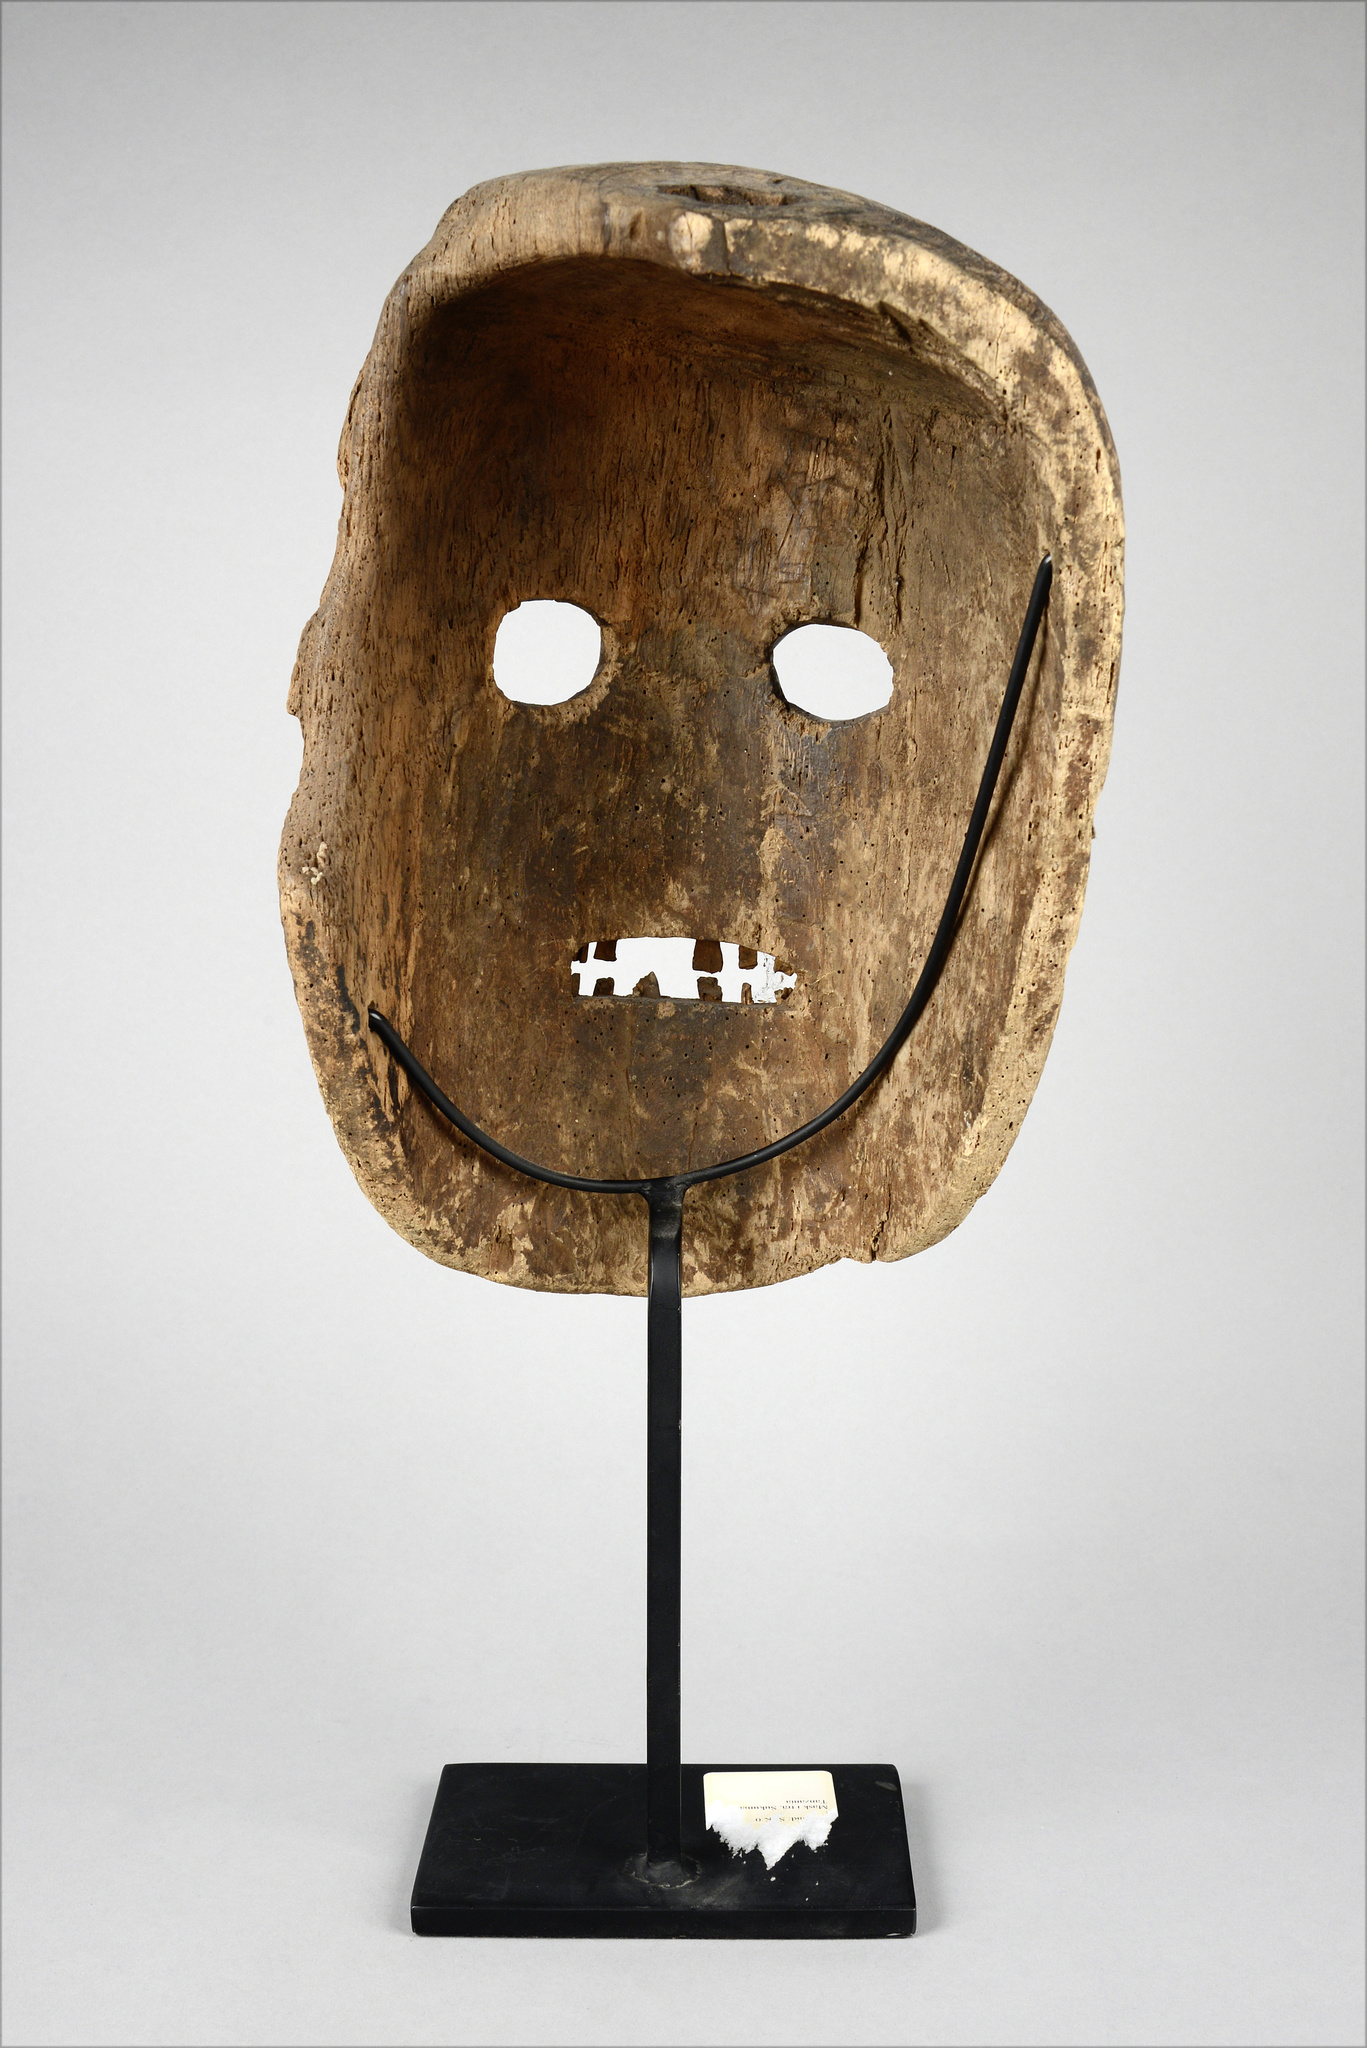 Anthropomorphic face mask